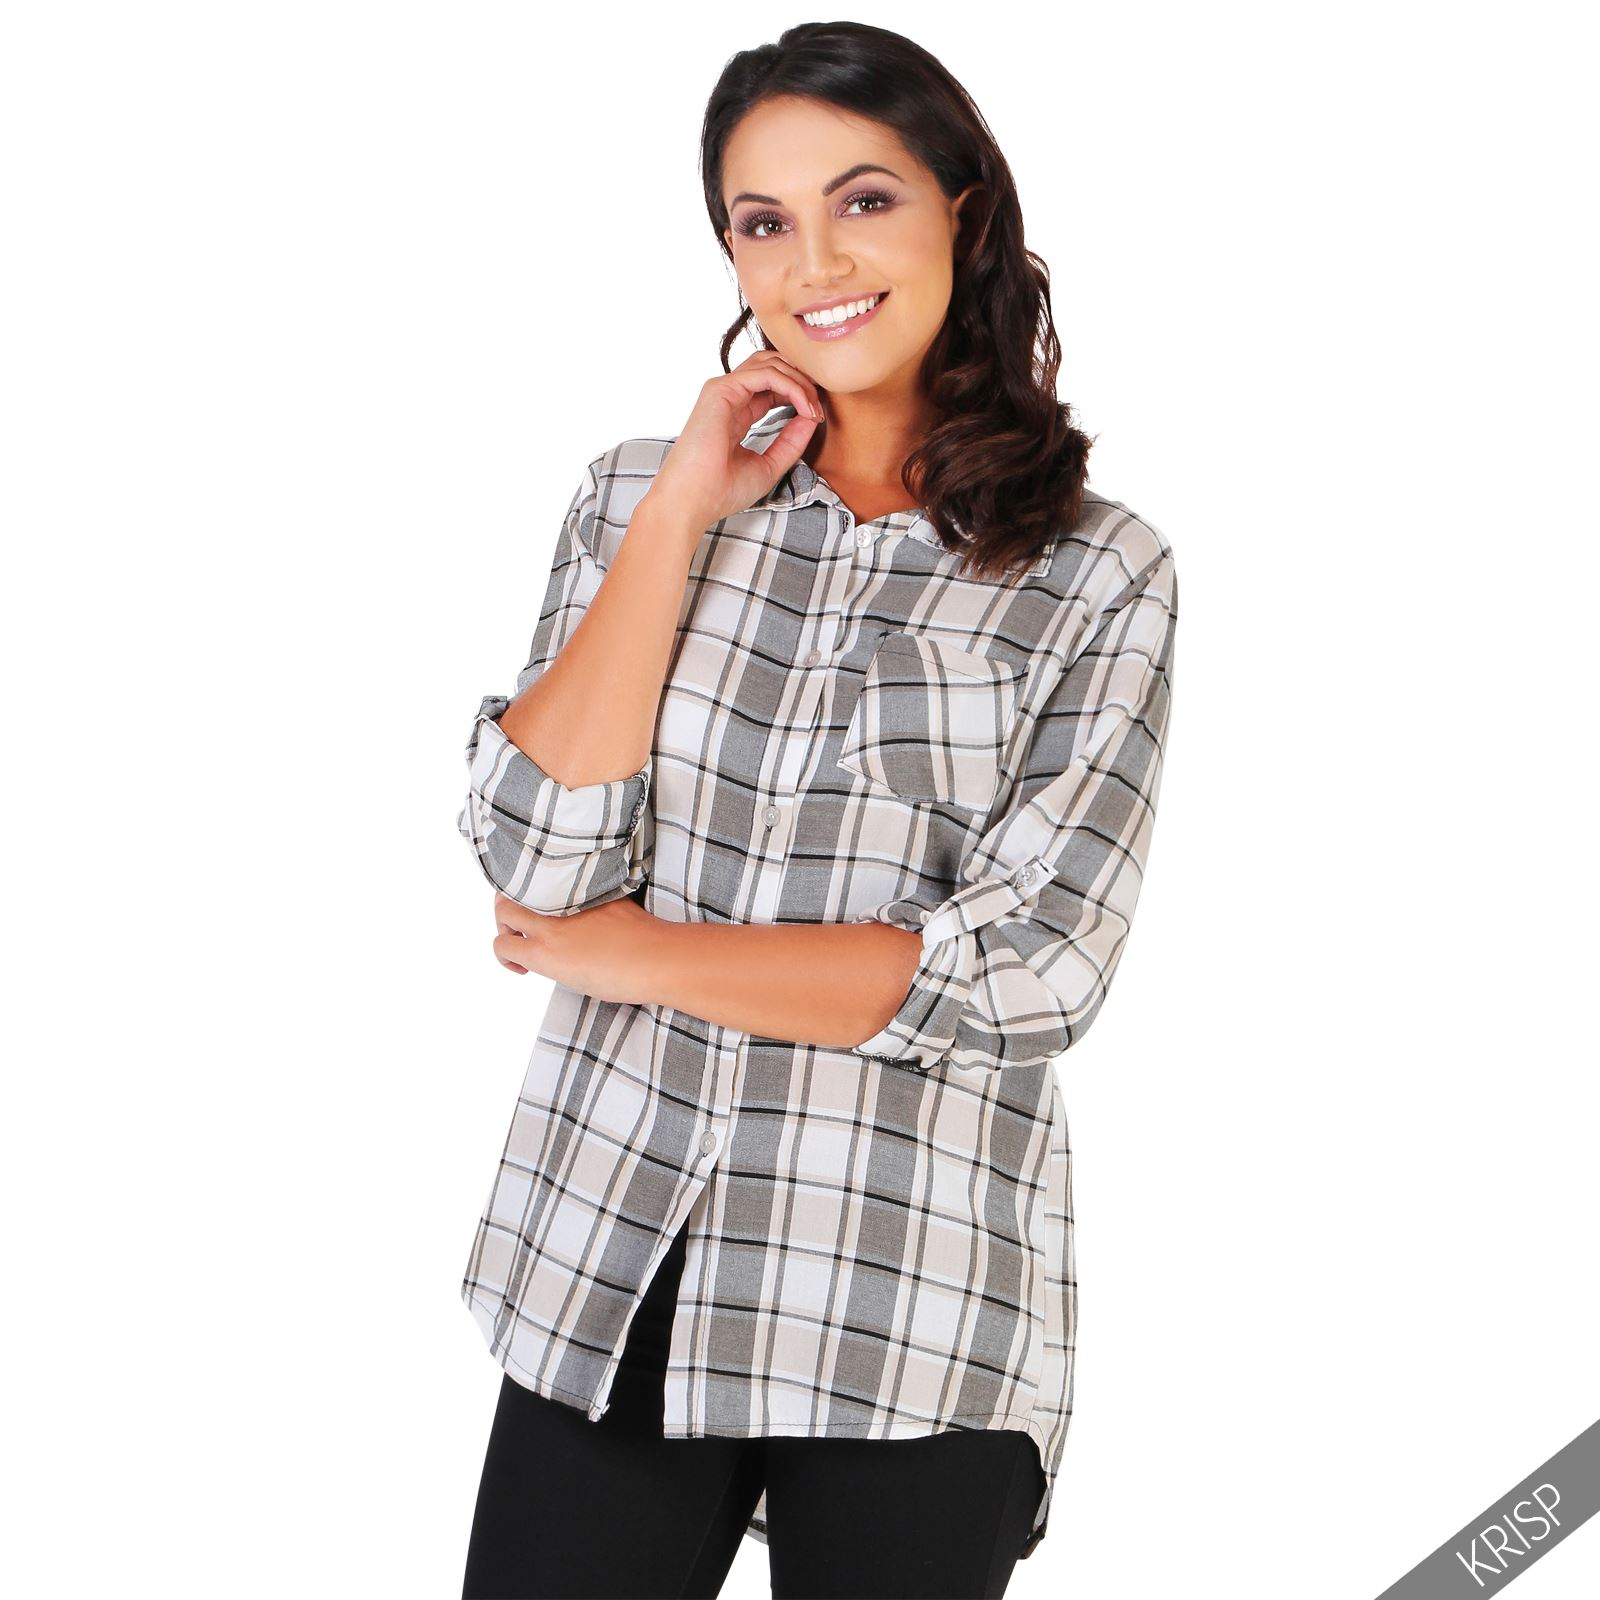 It's the season of plaid! But not all flannel is created equal. This premium sleepwear collection features woven, double-brushed cotton flannel that's impeccably soft - straight out of the gift box. And because its yarn-dyed, the colors are guaranteed to.